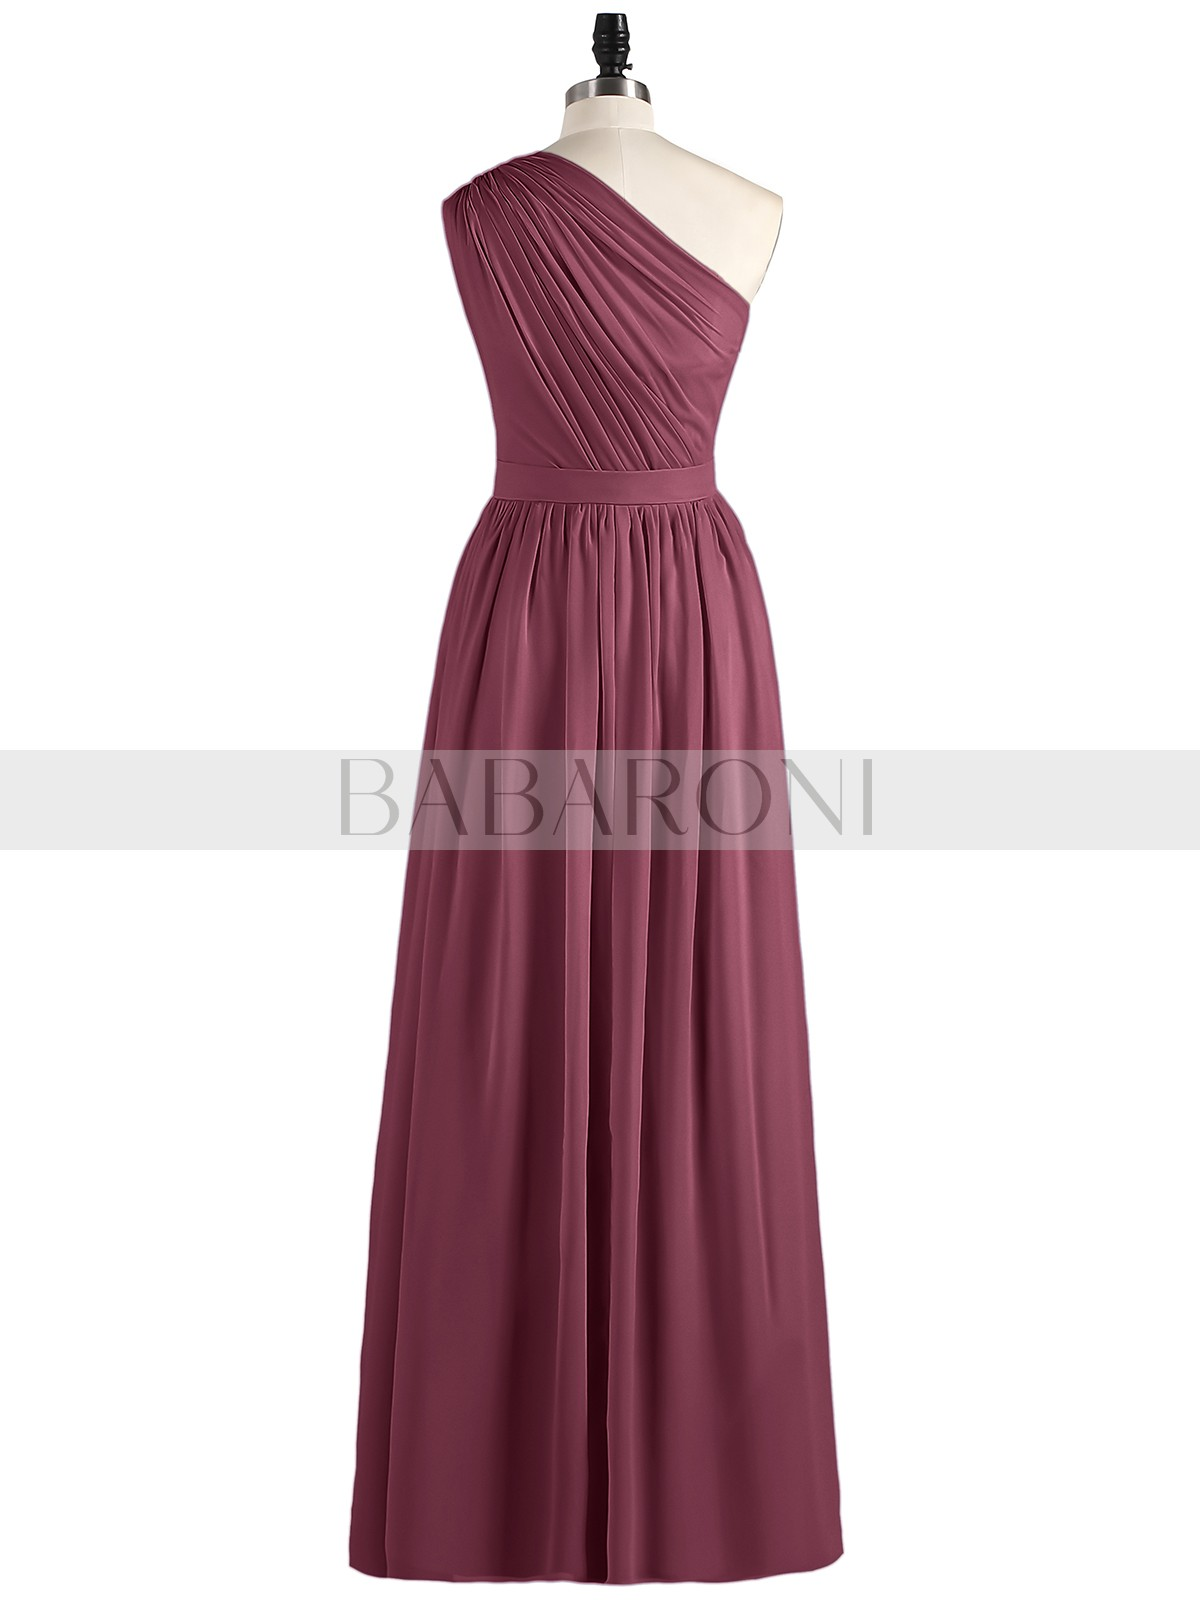 Cocktail Bridesmaid Party Dress Long Chiffon One Shoulder Size 16 PINK FUCHSIA